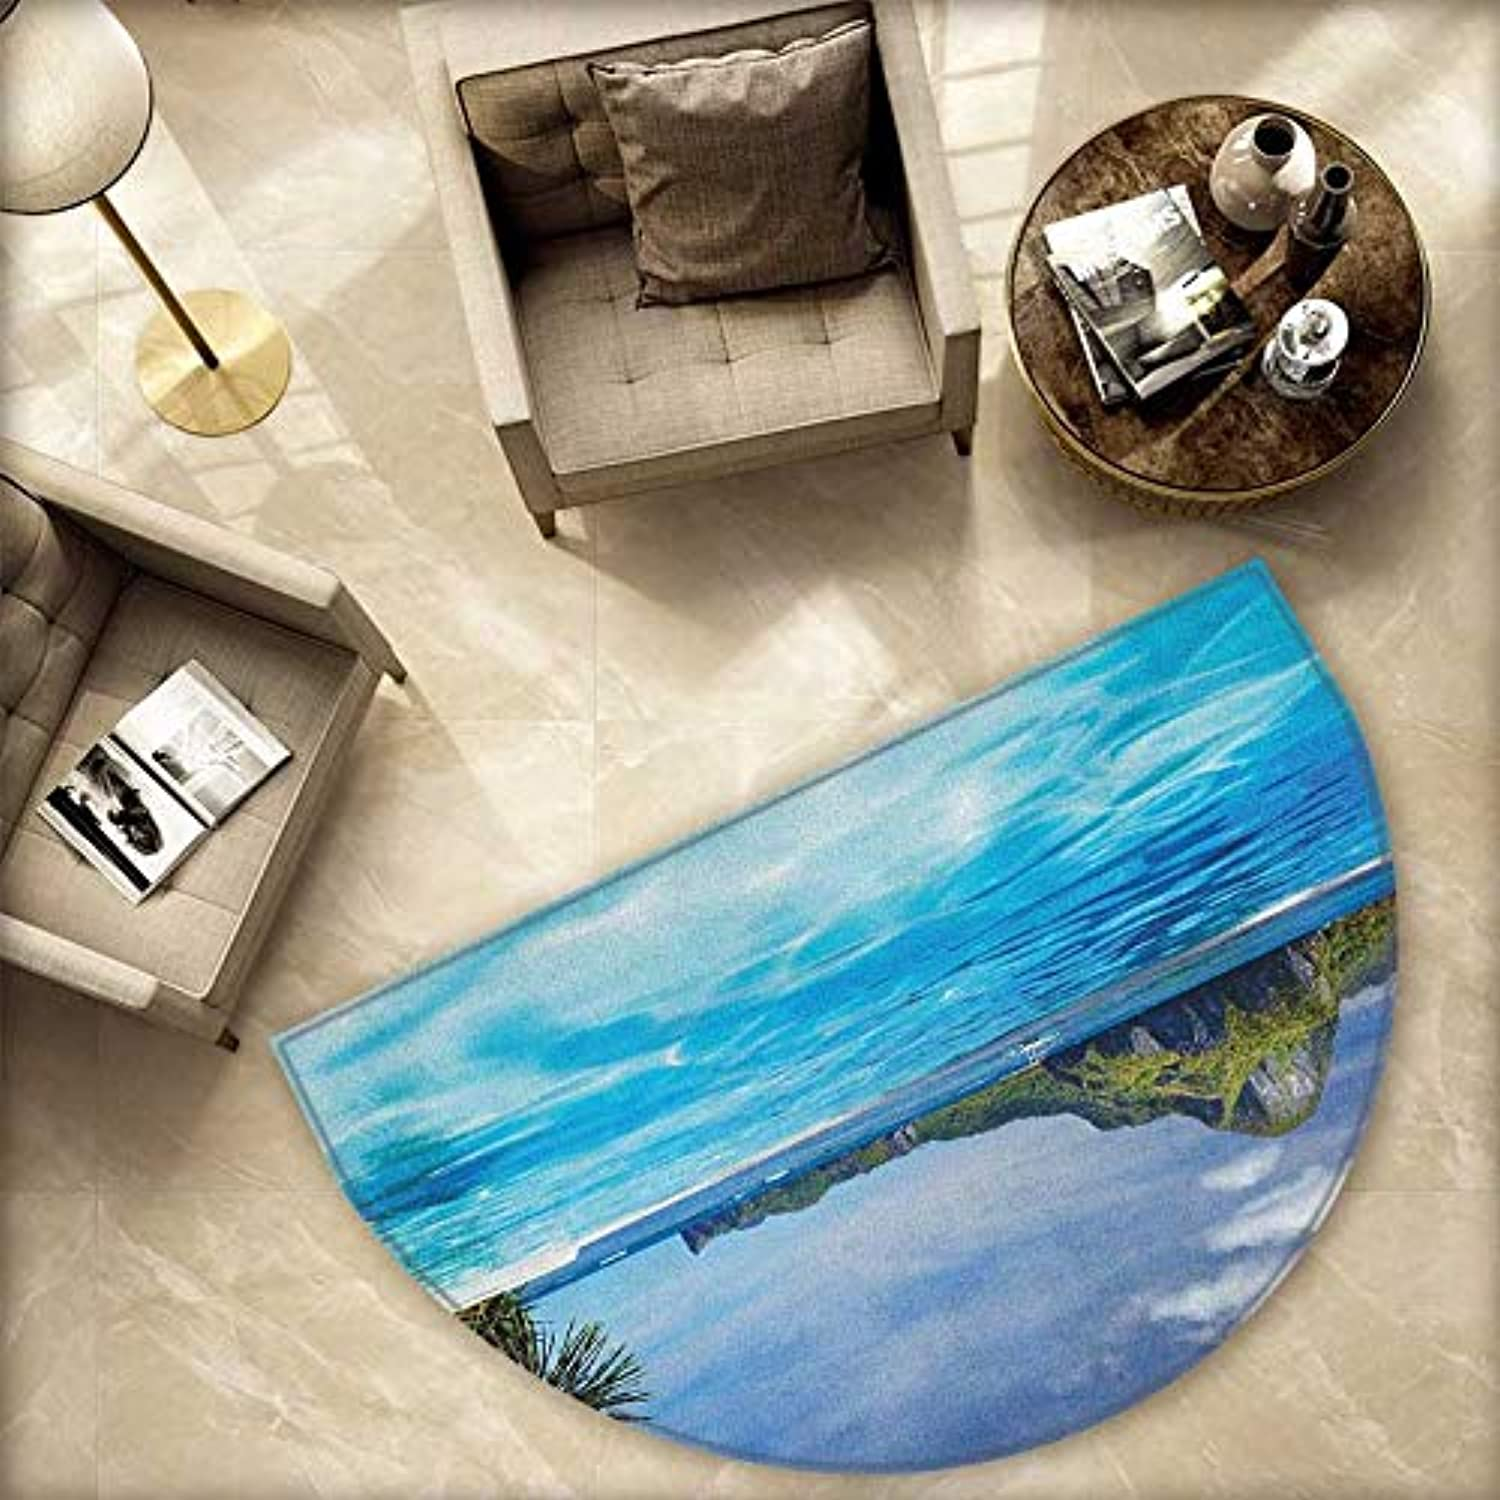 Landscape Half Round Door mats Landscape with Swimming Pool and Distant Island Tropic Exotic Hawaiian Theme Bathroom Mat H 78.7  xD 118.1  Turquoise Green